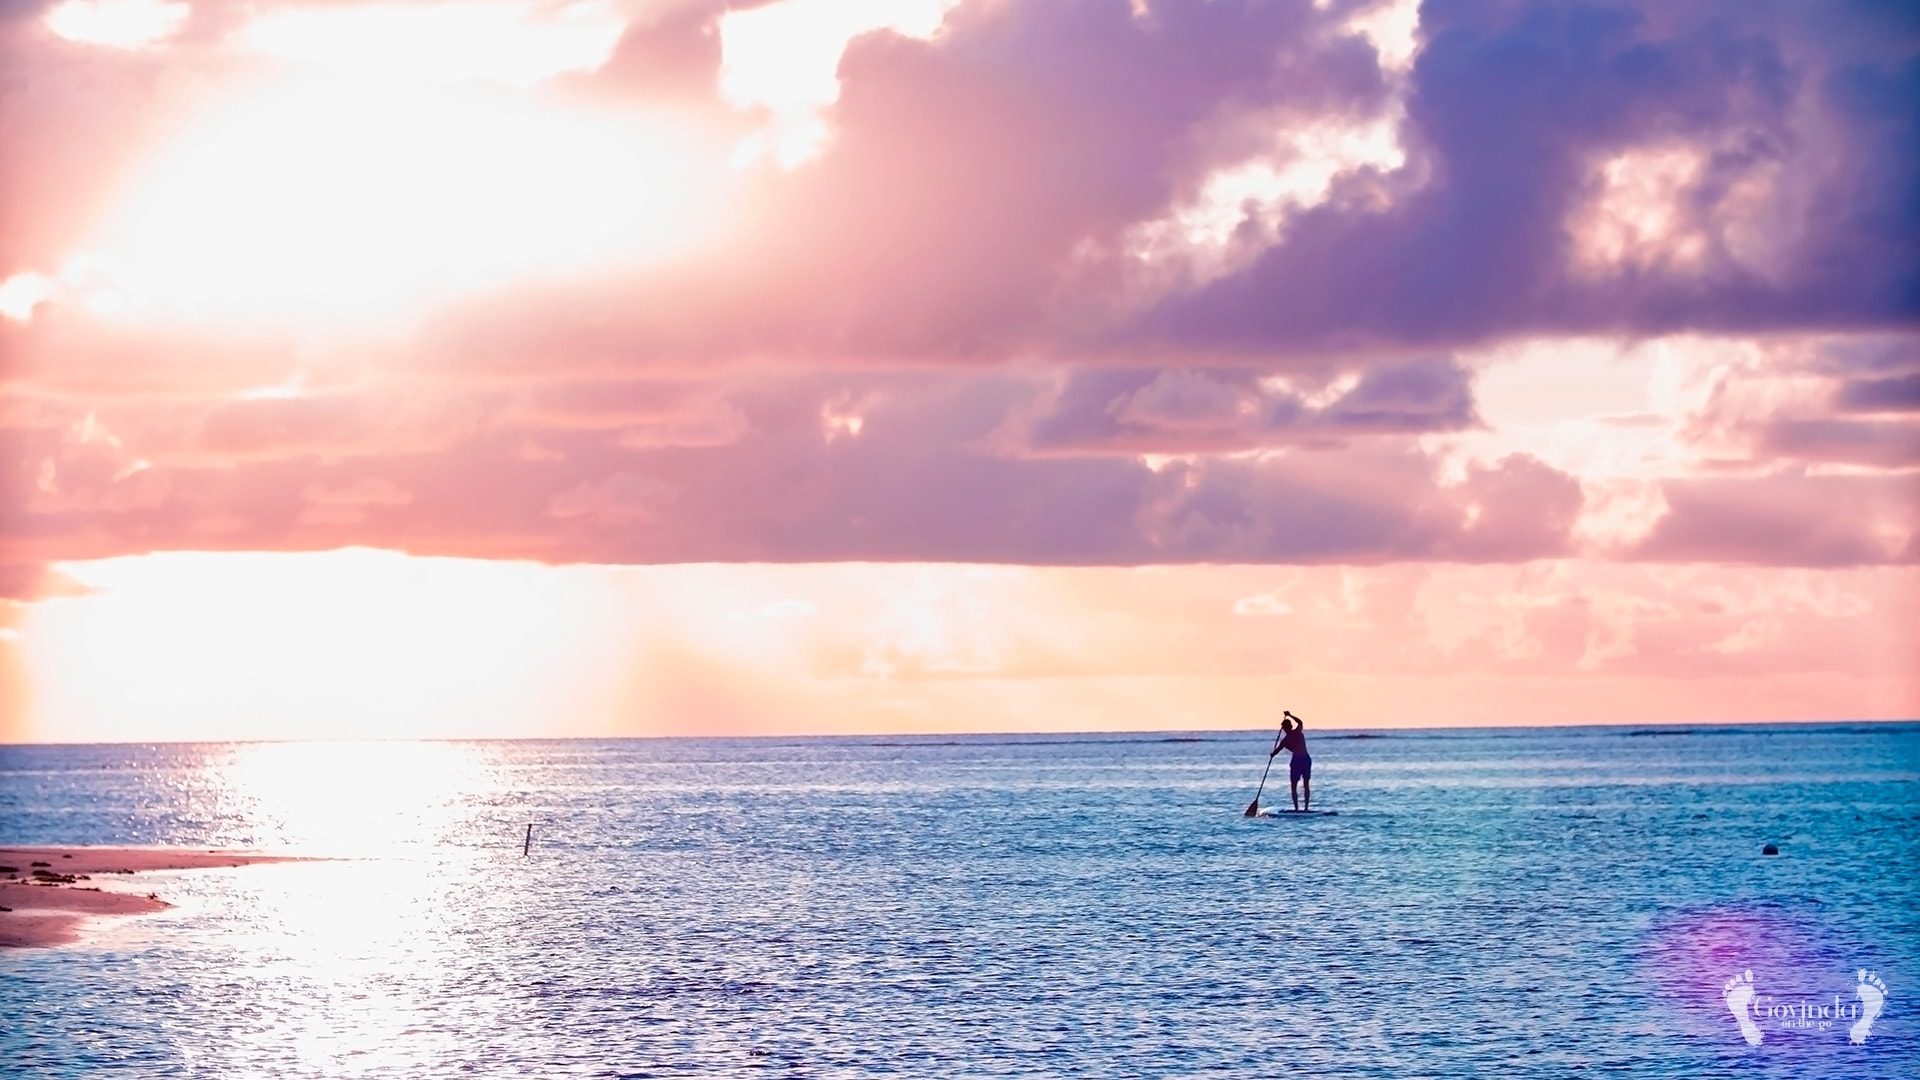 Surfing during sunset in Mauritius